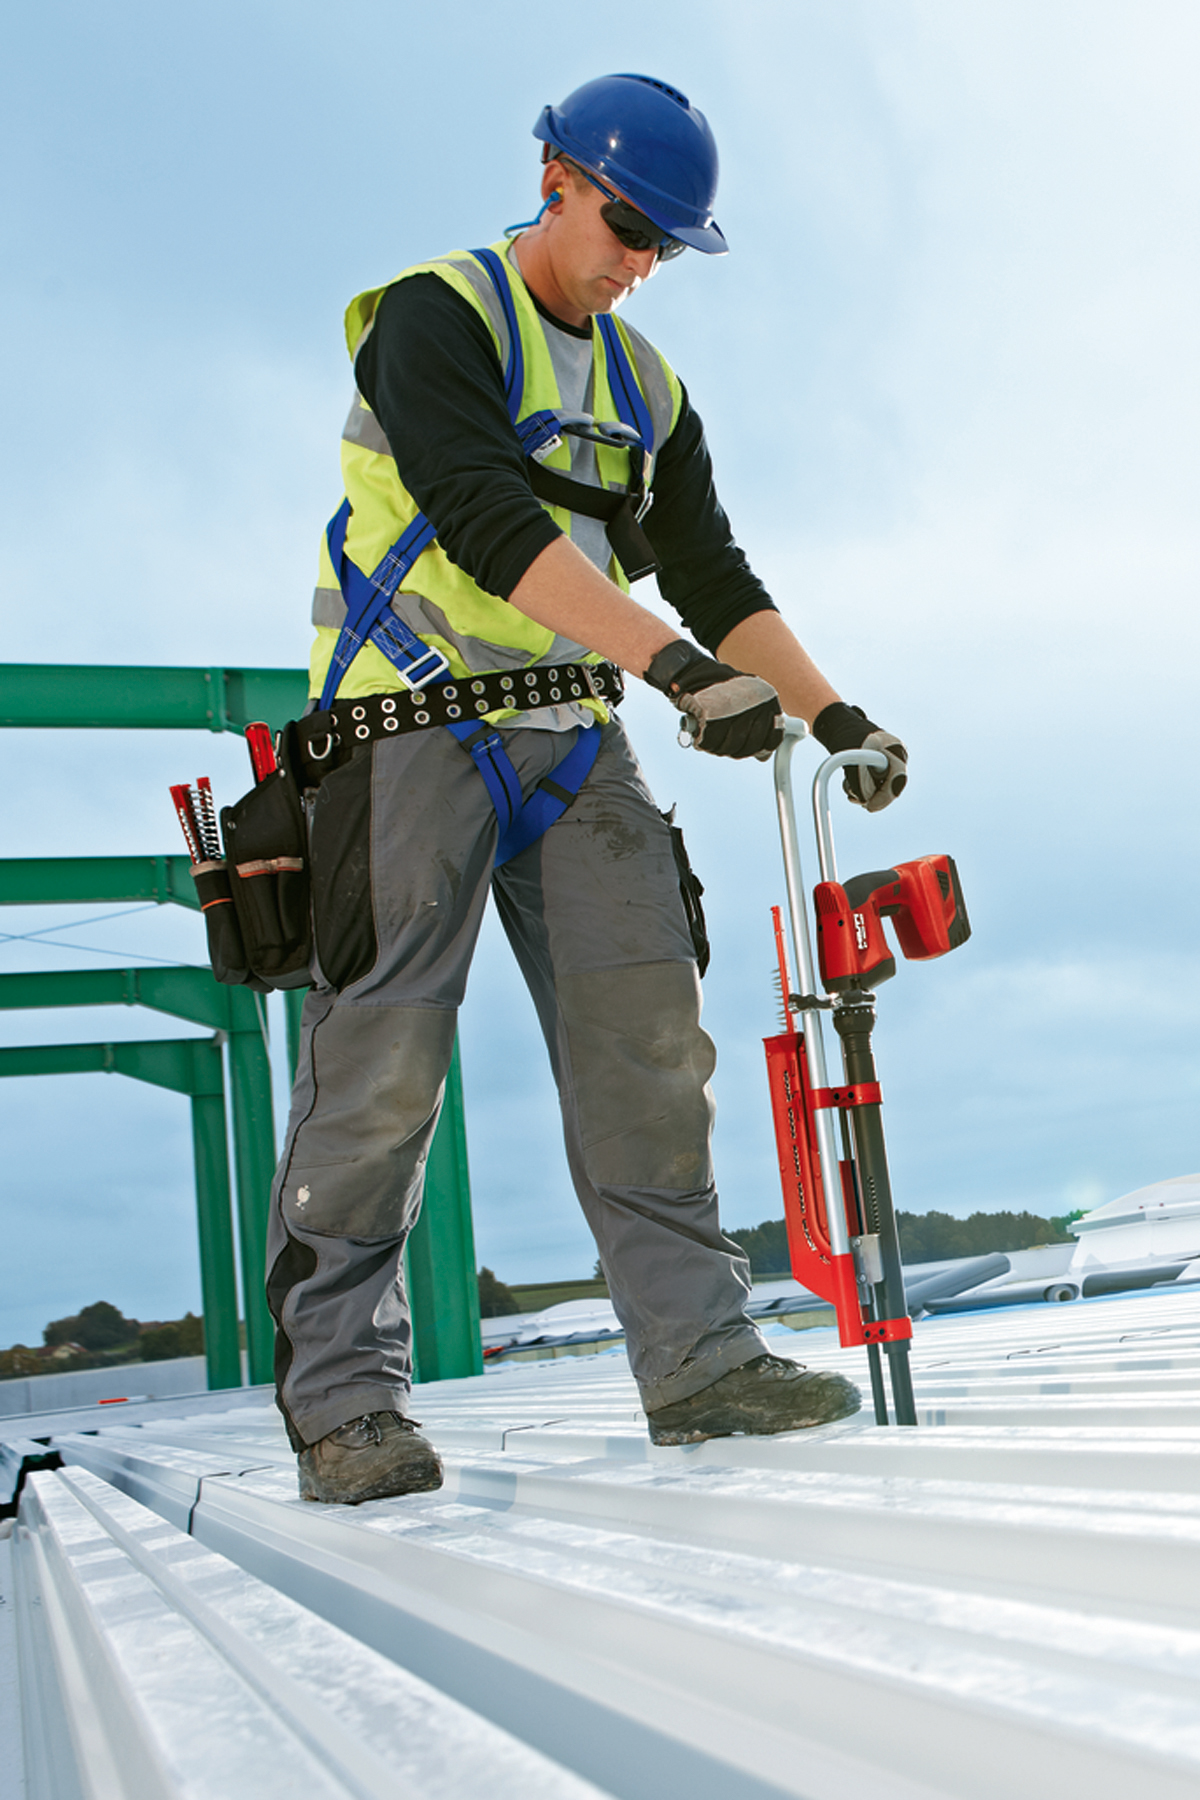 Stand Up Decking Tool System from Hilti| Concrete ...